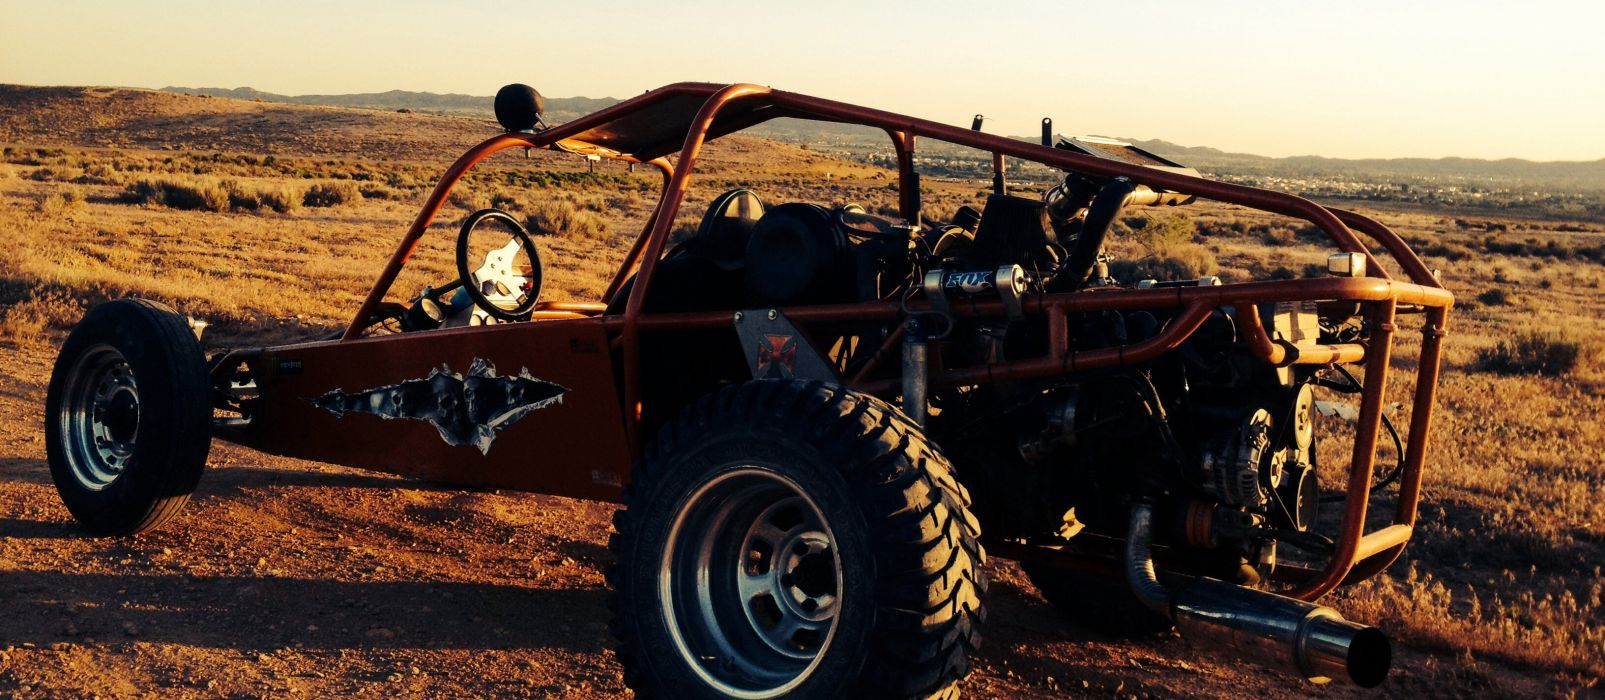 SANDRAIL dunebuggy offroad custom hot rod rods atv dune baja wallpaper